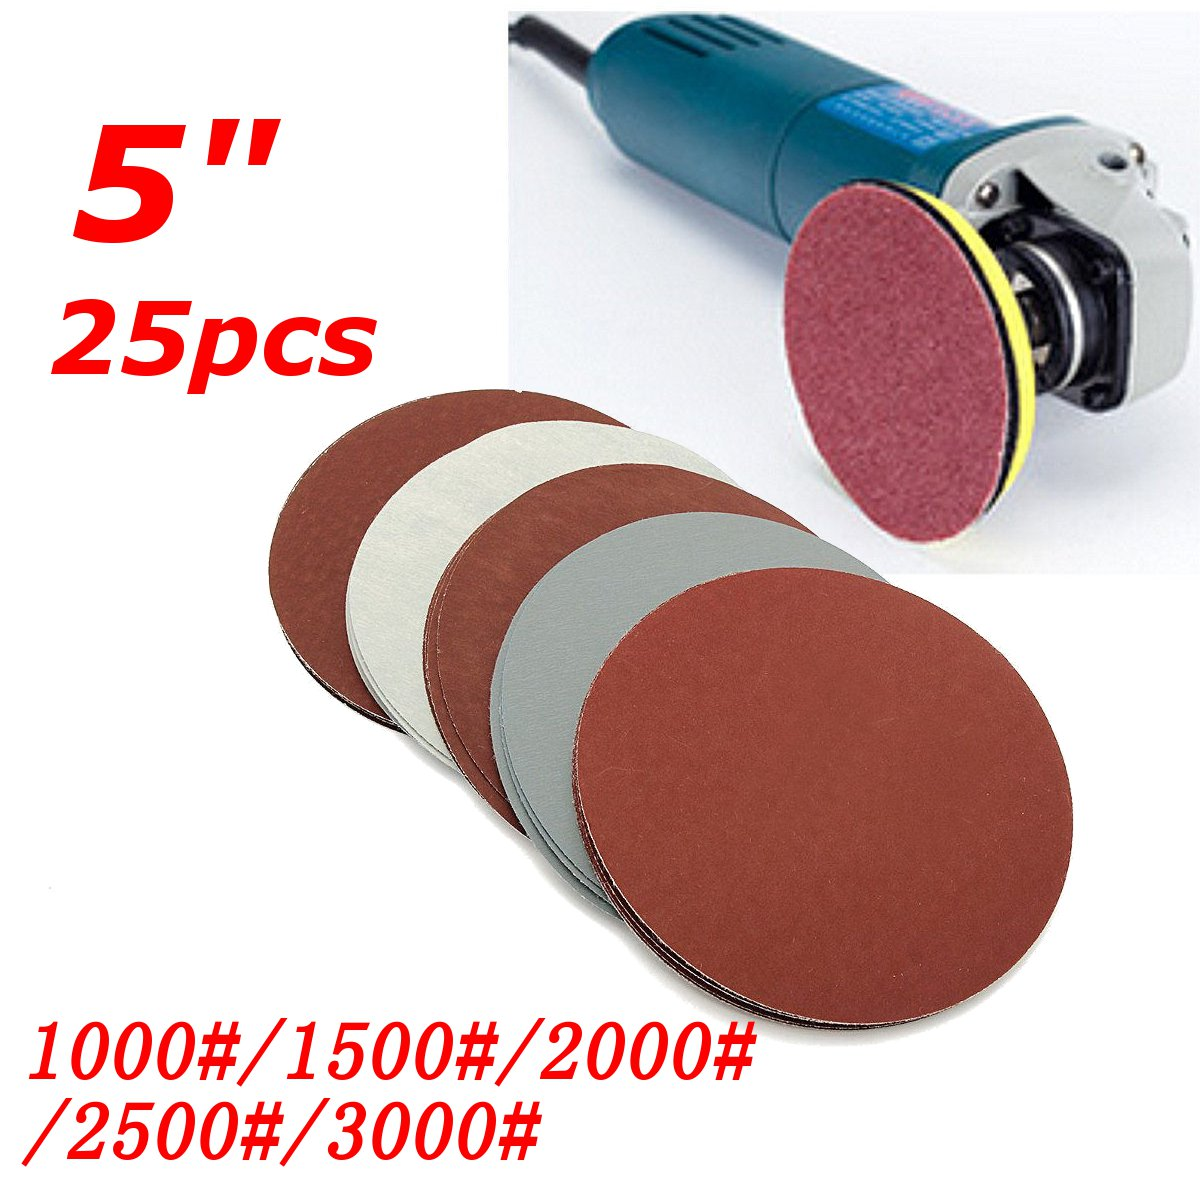 25 Pcs/set 5 Inch Round Sandpaper Abrasive Sand Sheets Grit 800/1000/1500/2000/3000 Hook&loop Sanding Disc For Sander Grits